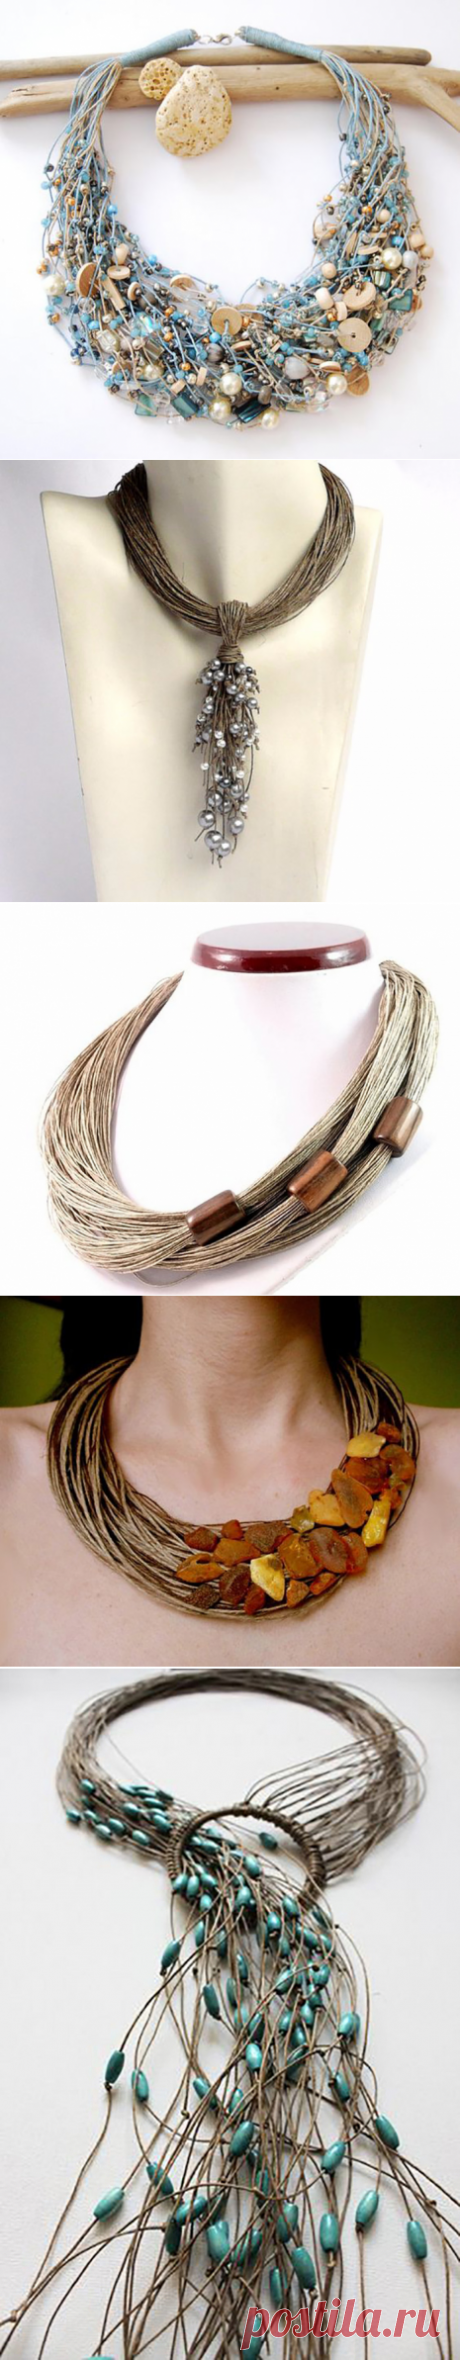 Ecostyle - flax and beads